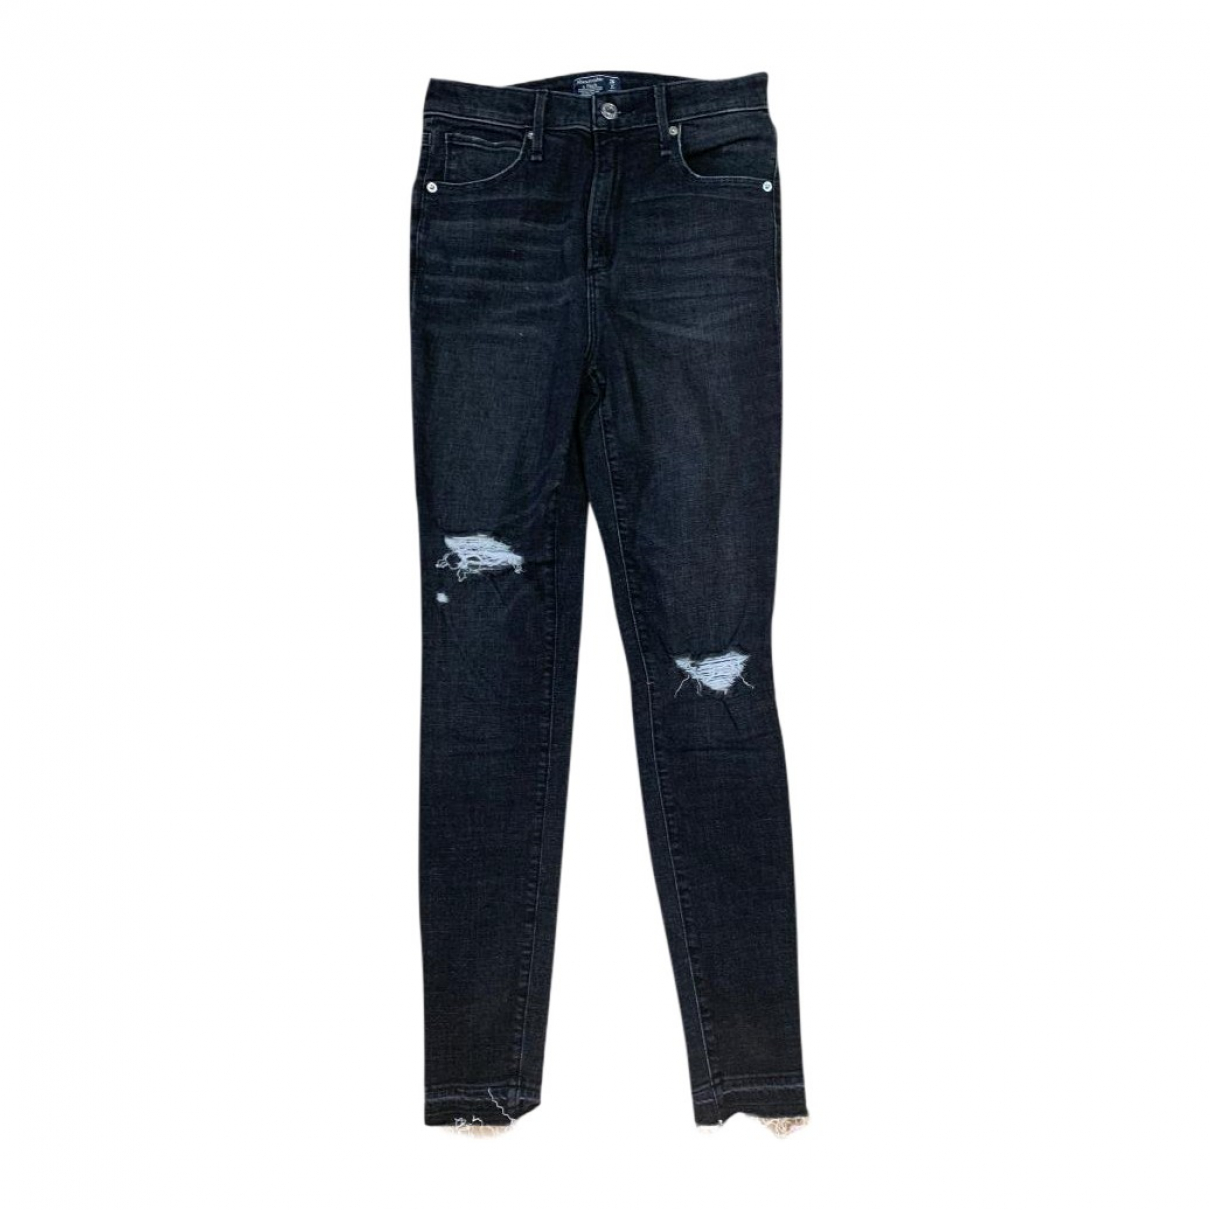 Abercrombie & Fitch \N Black Denim - Jeans Jeans for Women 26 US